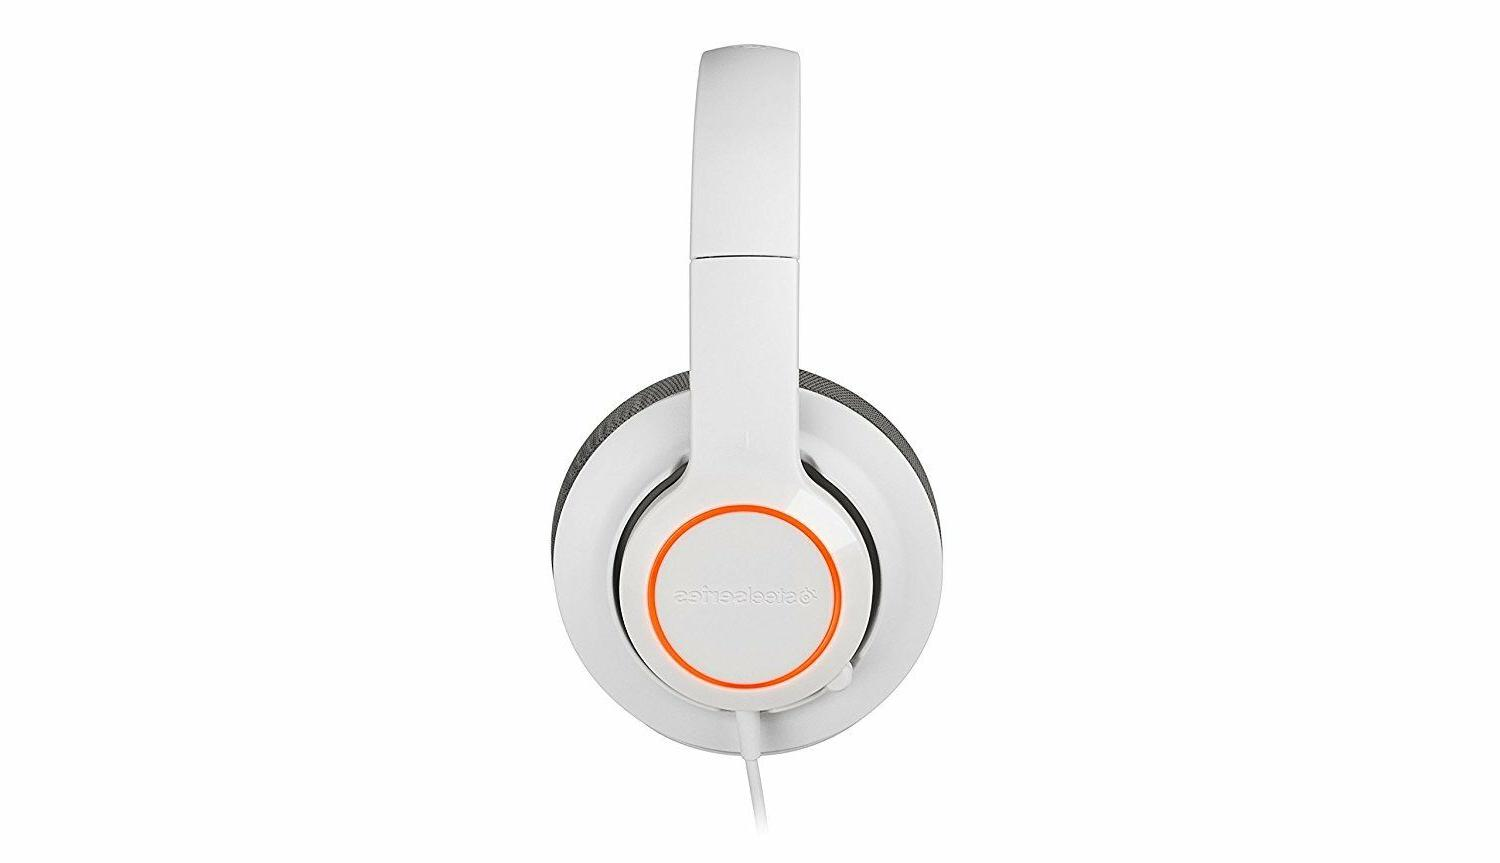 SteelSeries Siberia RAW Prism White Mac PC Headset